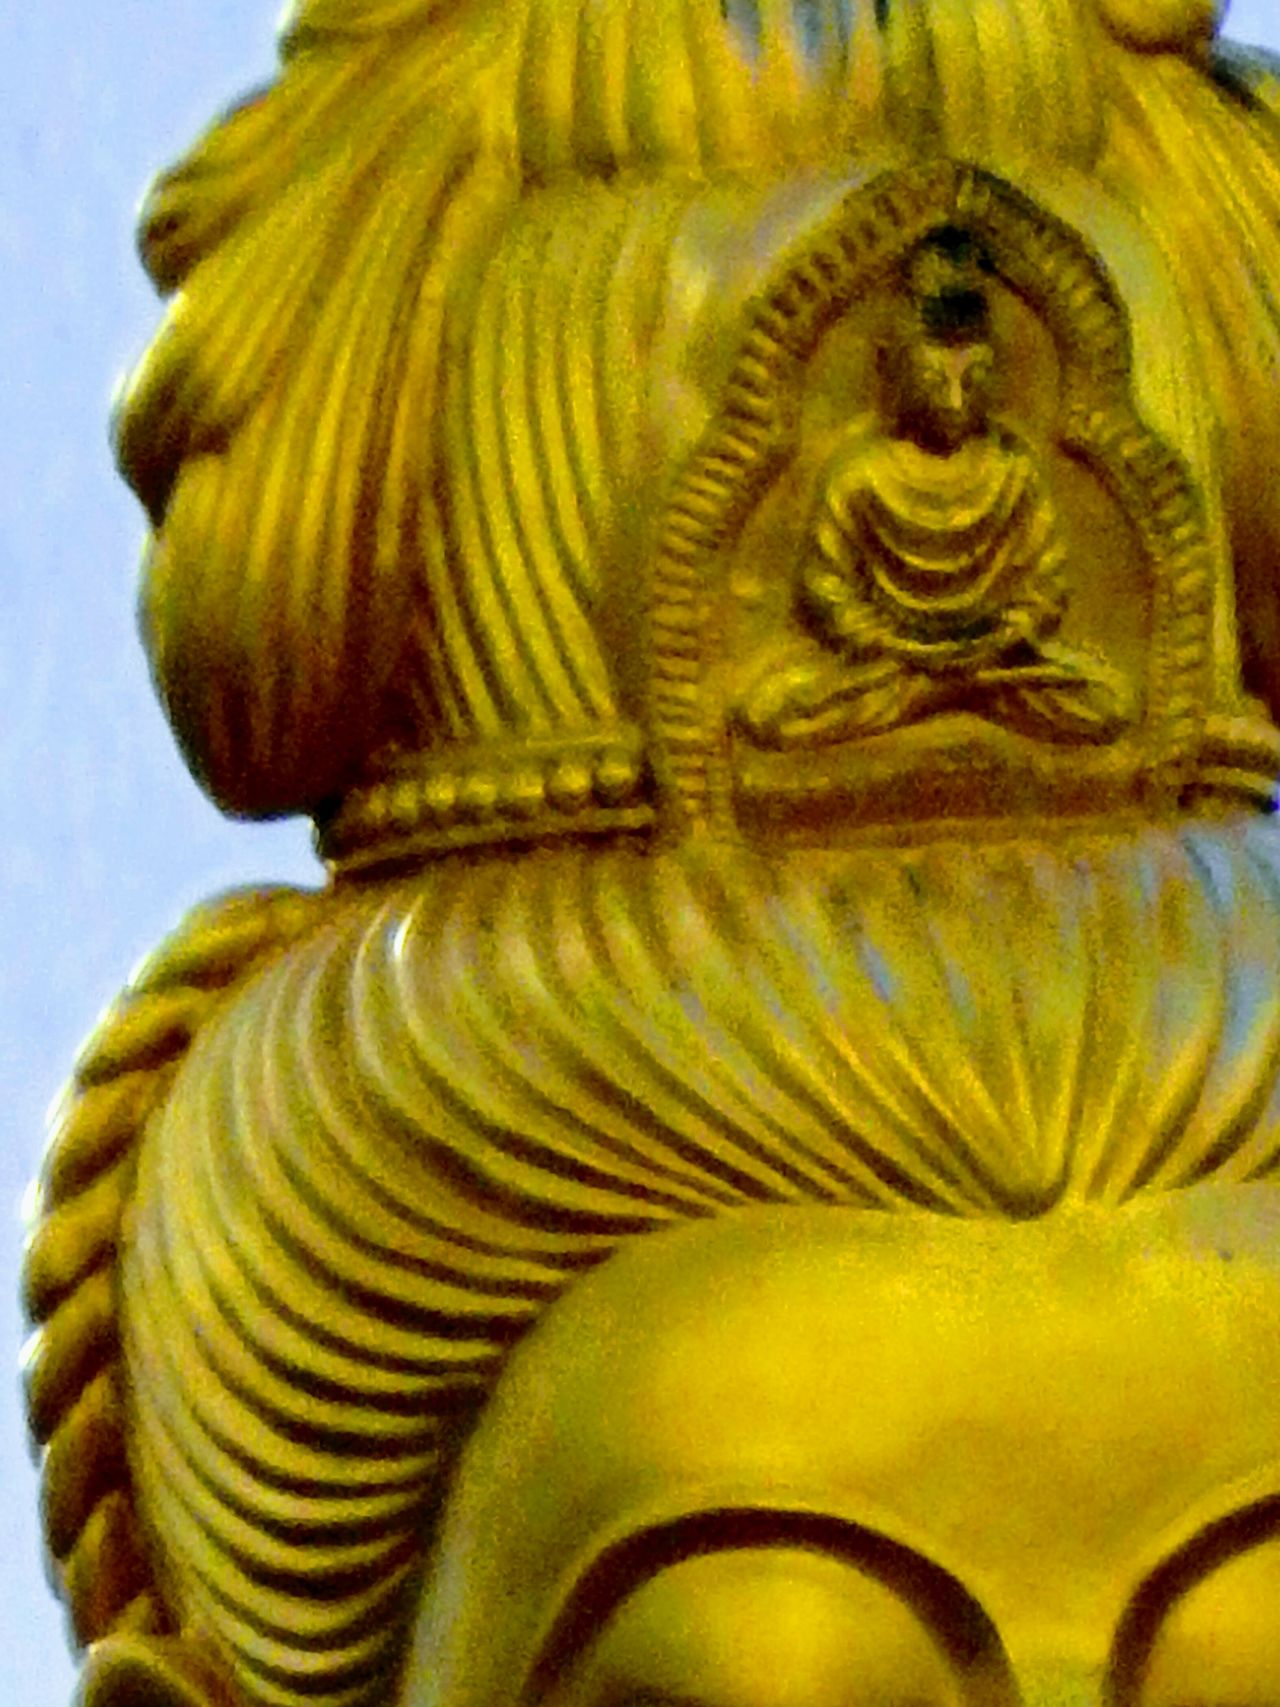 Zoomzoomshot. Guanyin Chinese Goddess. Trang province. Thailand. Religion Statue Gold Colored No People Place Of Worship Sculpture Spirituality Close-up Day Outdoors ZoomInToDetail Zoomzoom Zoom Shot High Angle View FaceShot Traveling Thailand BUDDHISM IS LOVE Shrines & Temples Architecture Buddhist Temple Beautifulplace Outdoors Photography EyeEm Best Shots - Landscape Eyemphotography Beauty In Nature